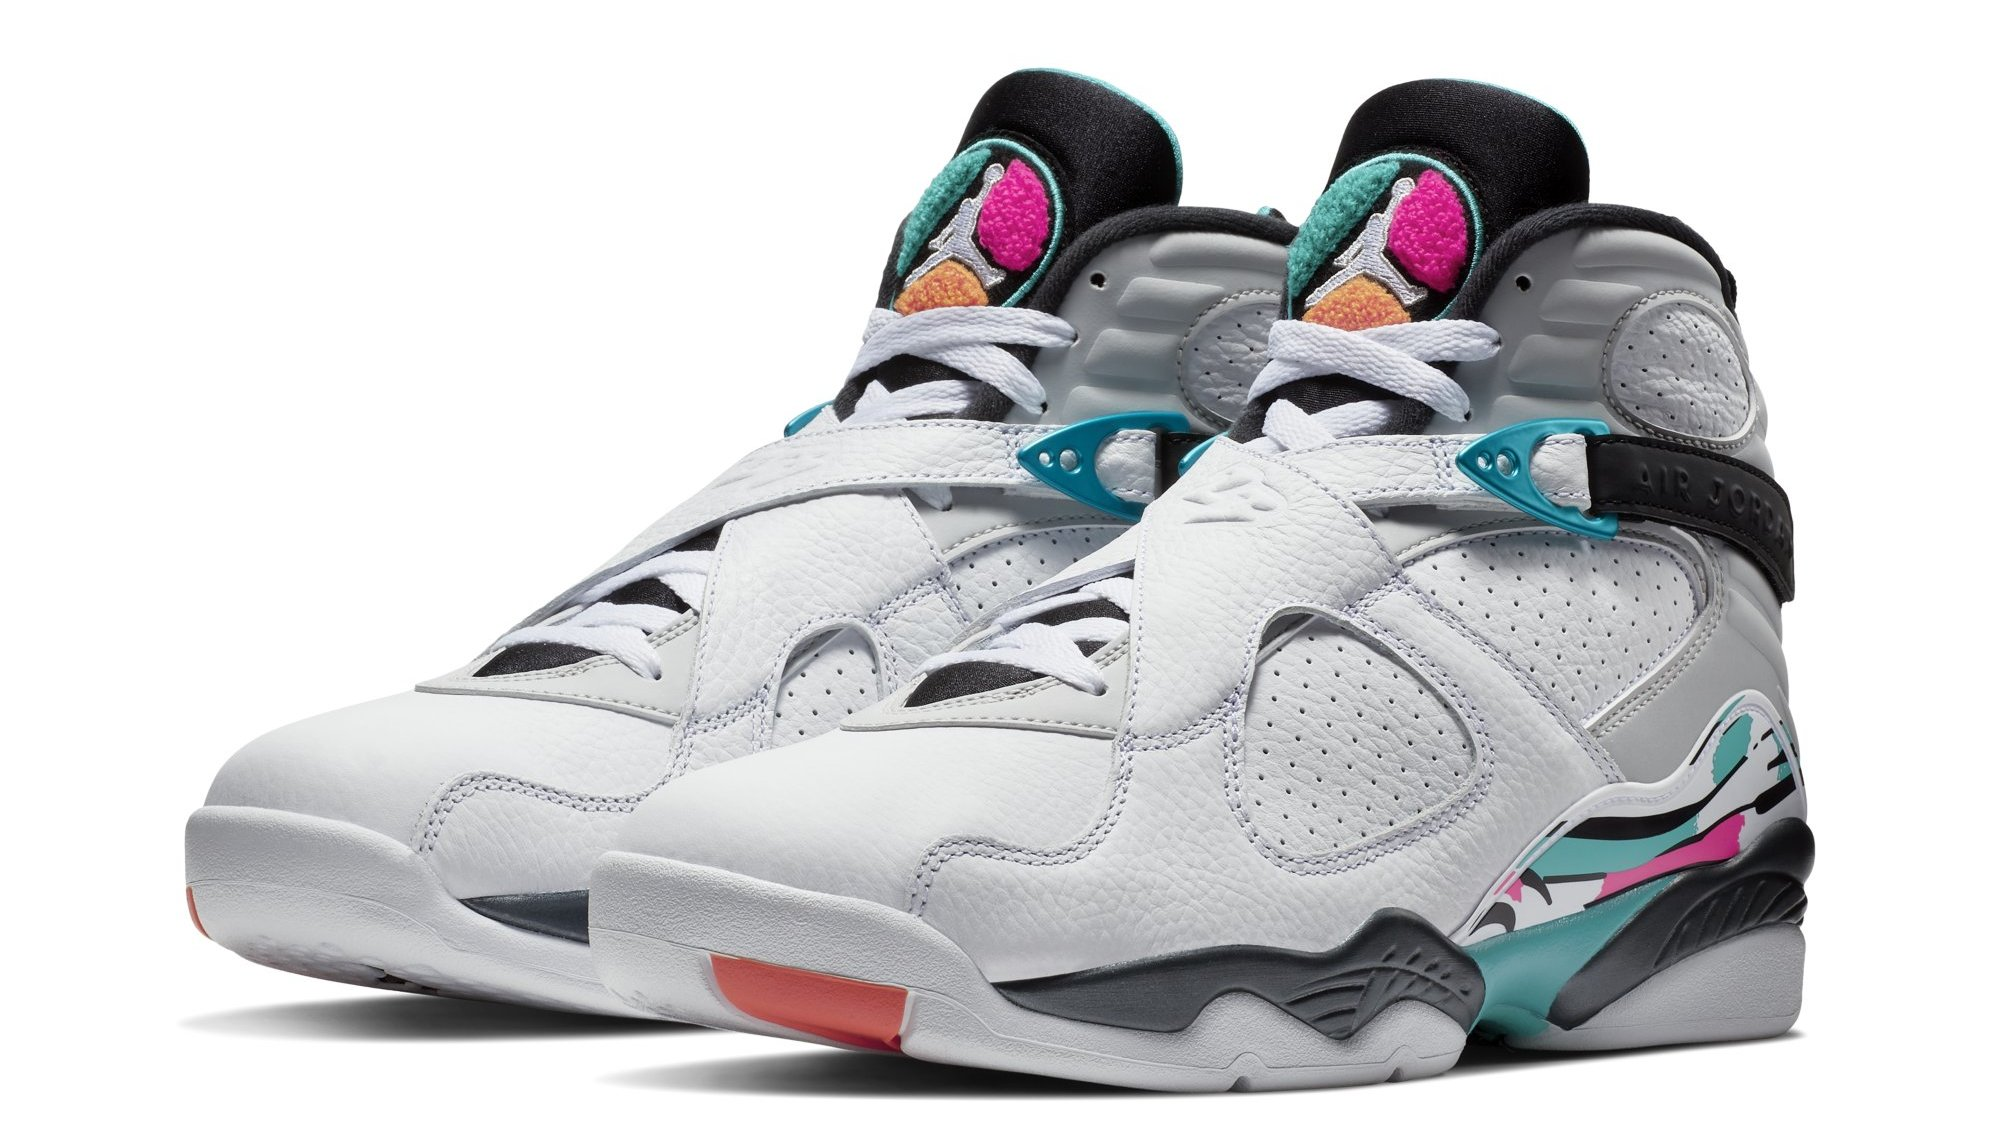 newest collection 08bb6 37ade Air Jordan 8 VIII South Beach Release Date 305381-113   Sole Collector